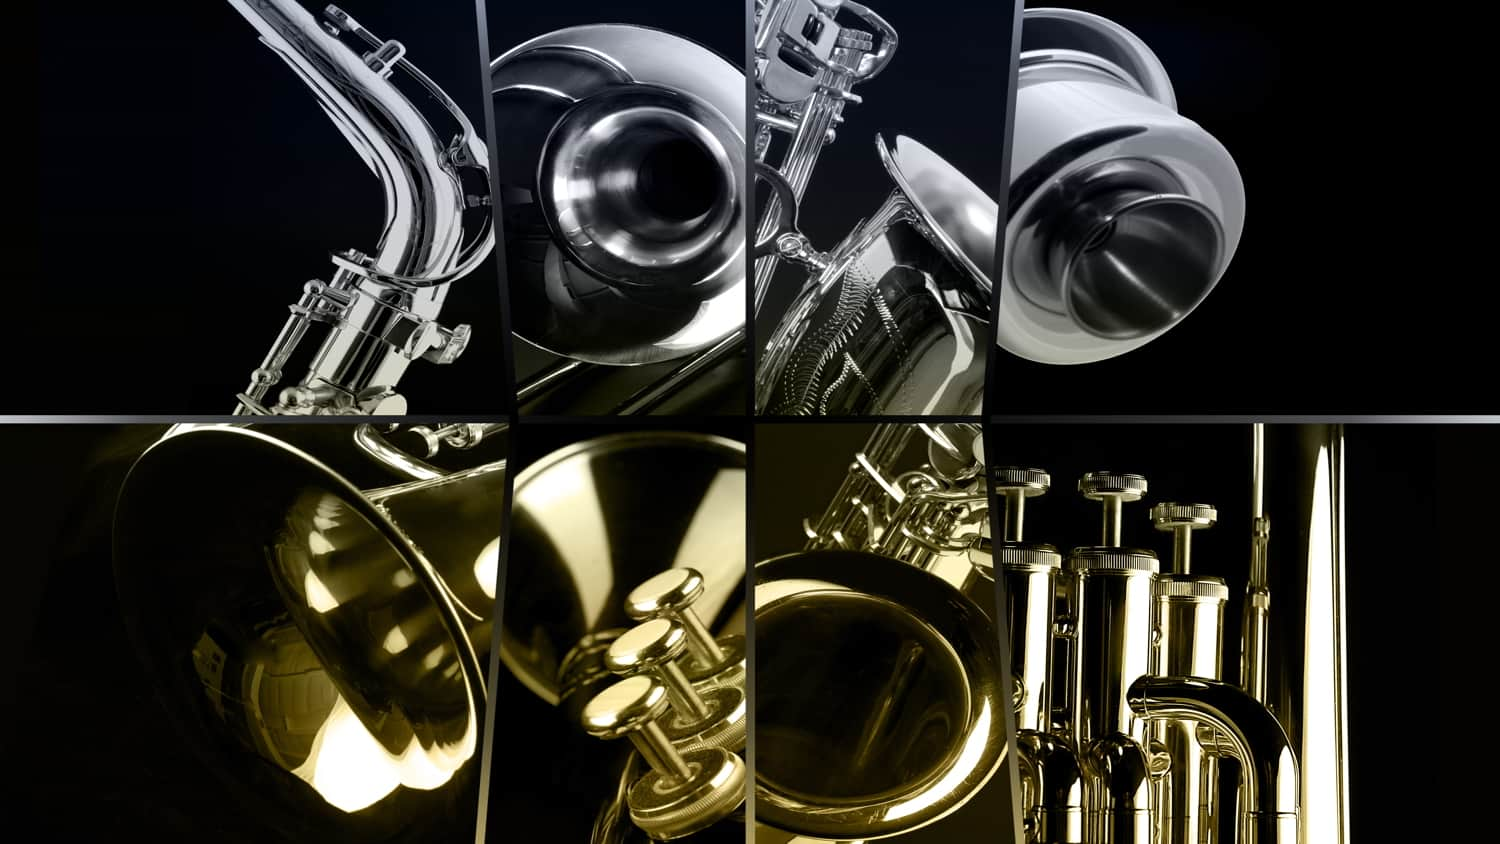 Session Horns Pro - Customize your perfectly sampled horn section